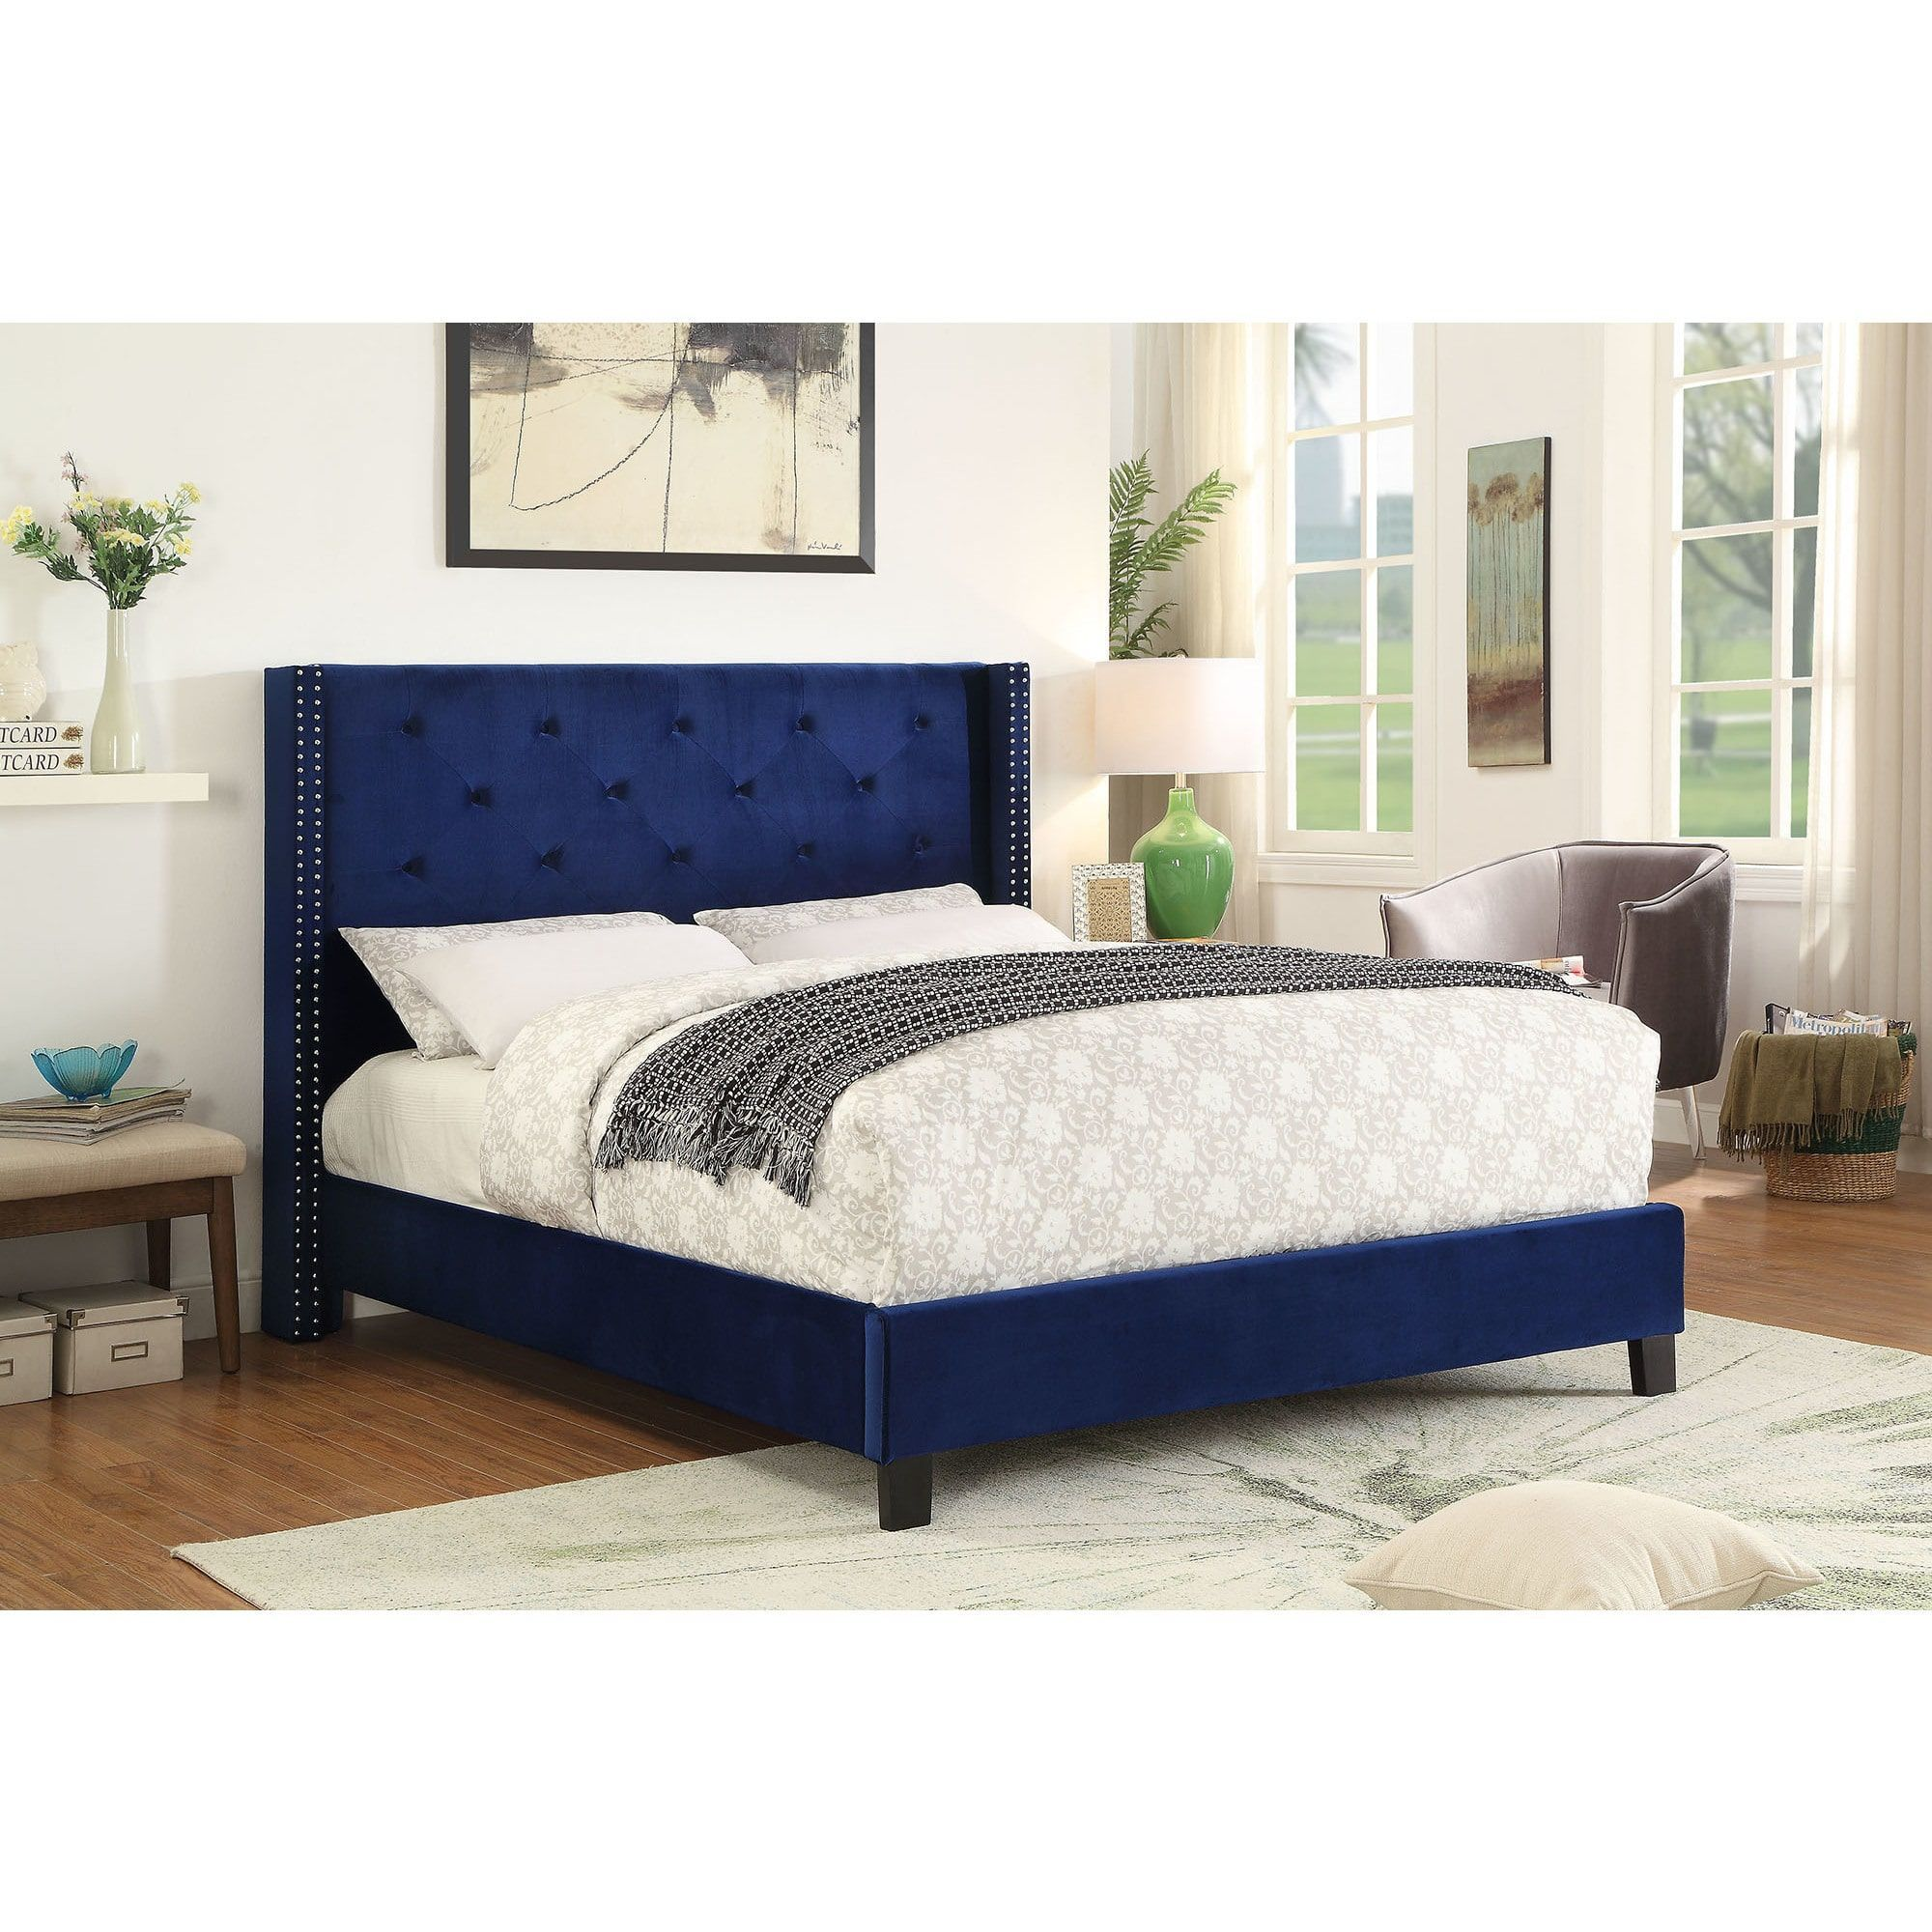 Worldwide Lino Velvet Queen Platform Bed With Stud Detail (Off White